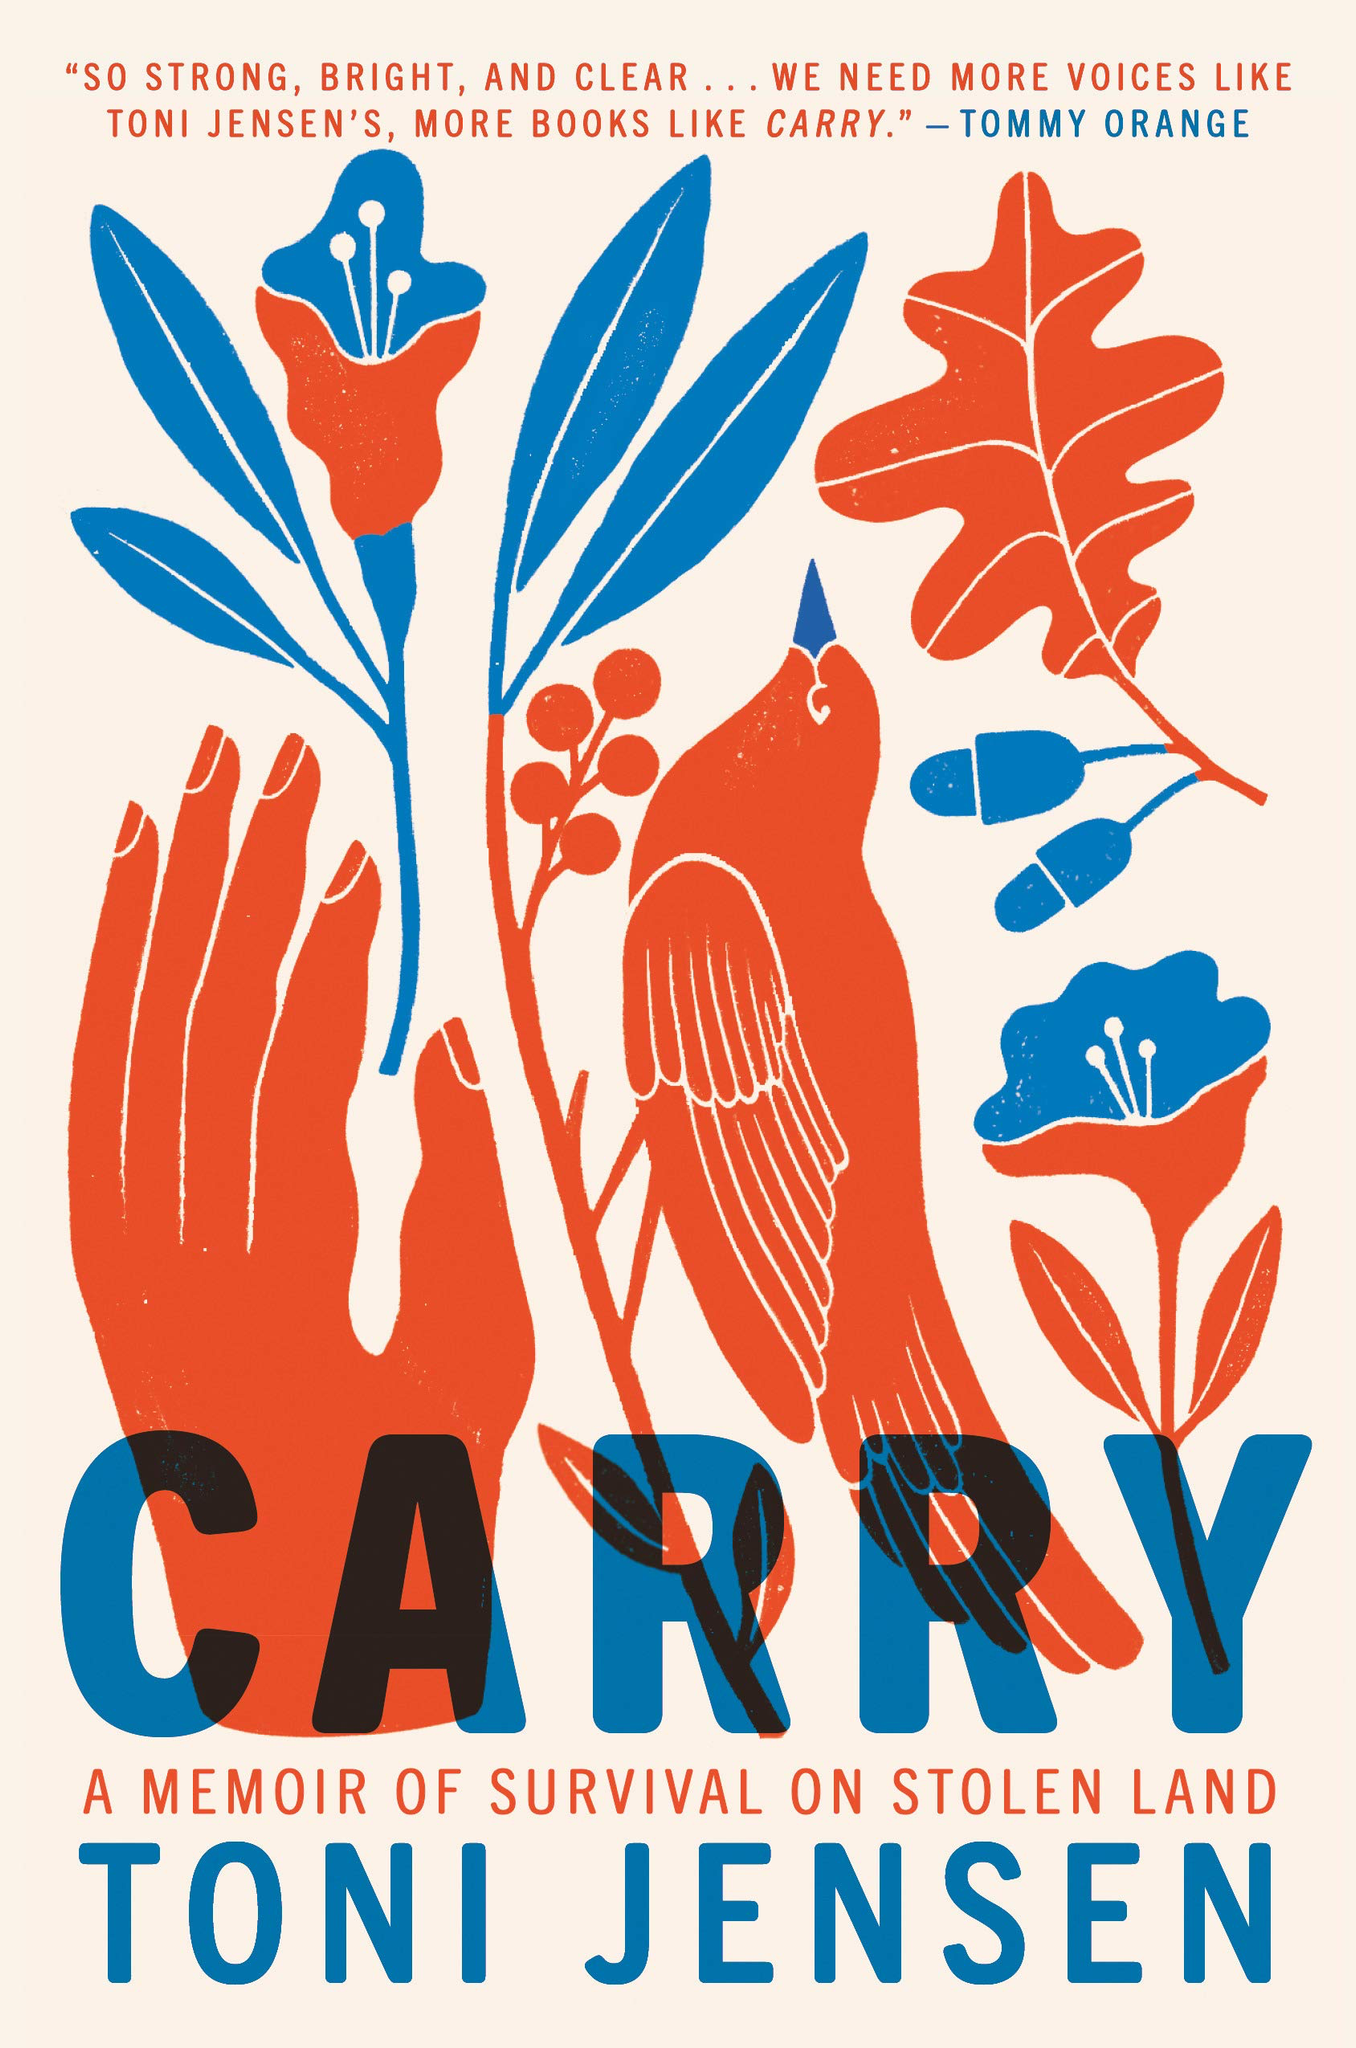 Carry: A Memoir of Survival on Stolen Land (Hardcover)